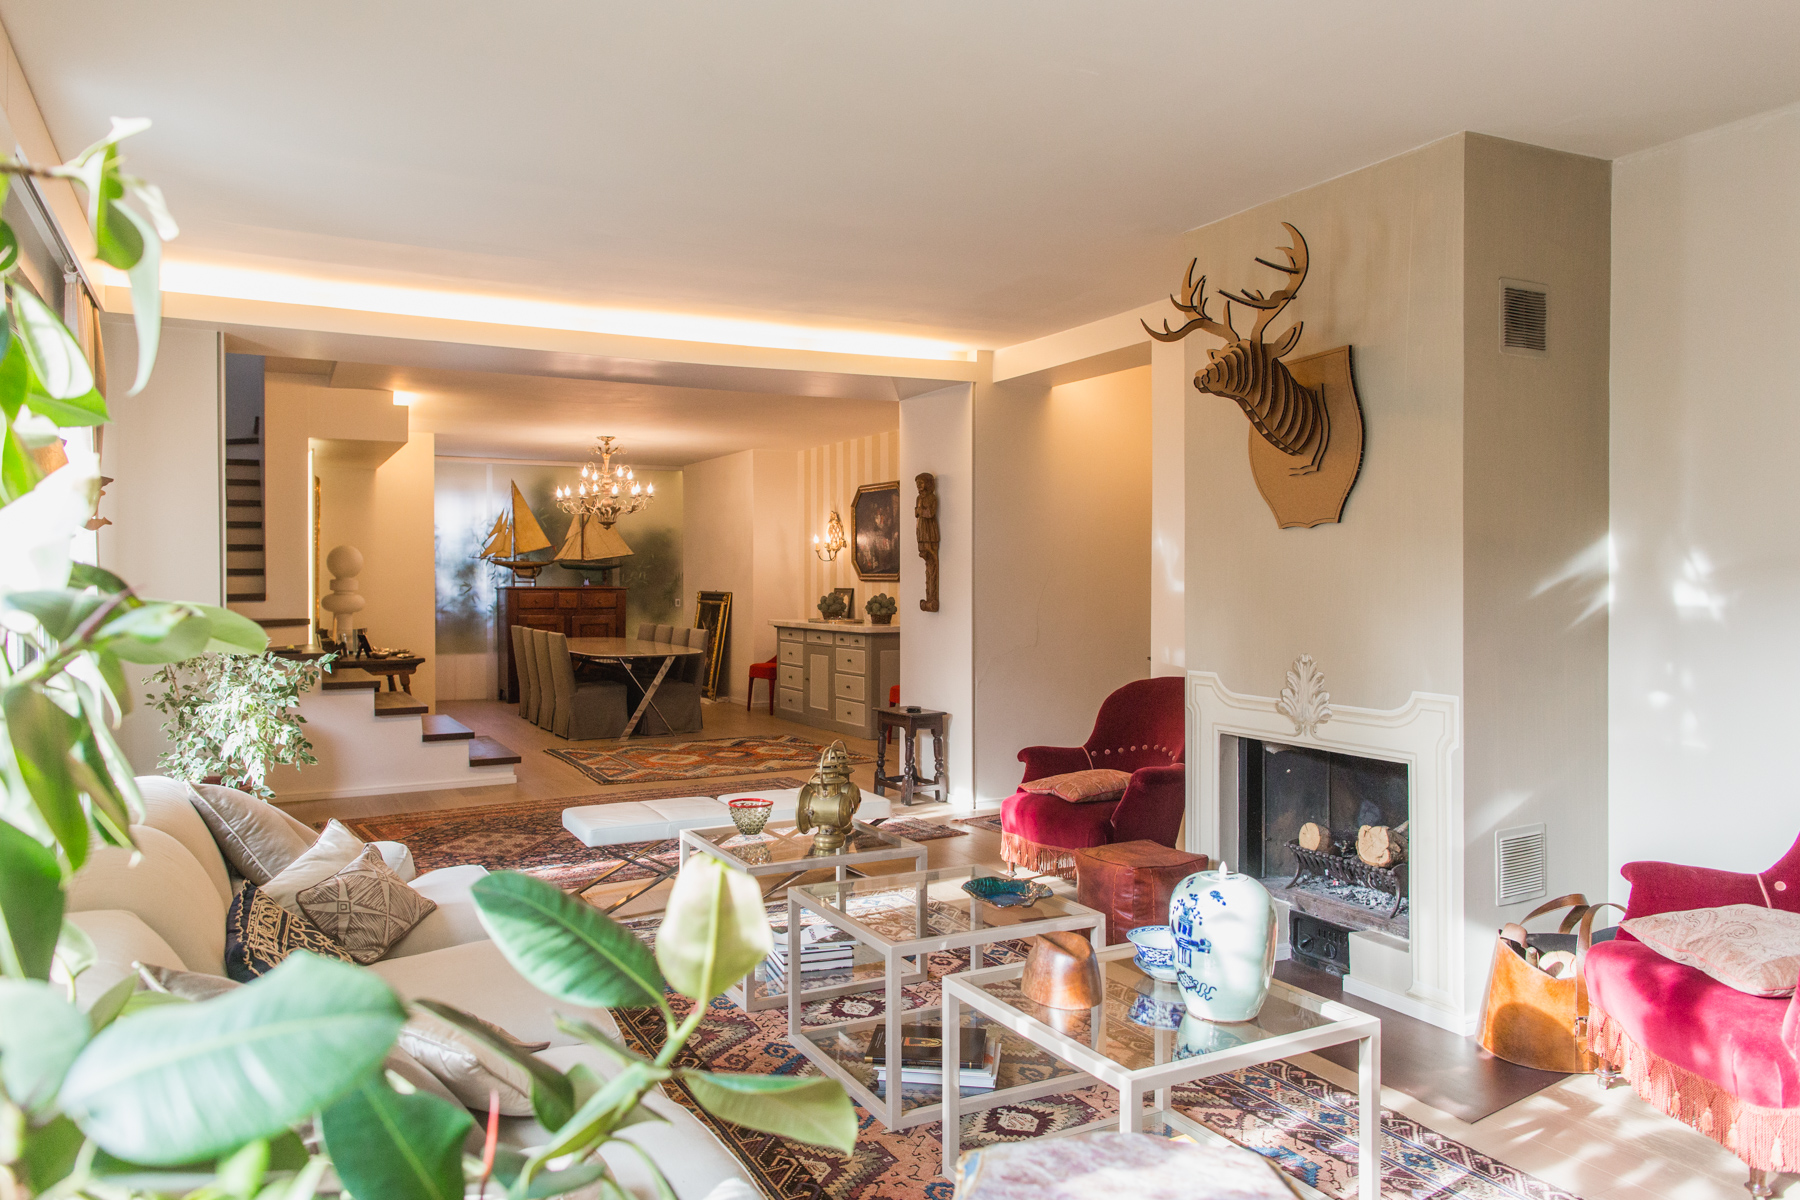 Additional photo for property listing at Refined apartment in the pre-hill of Turin Via Luisa del Carretto Torino, Turin 10131 Italie